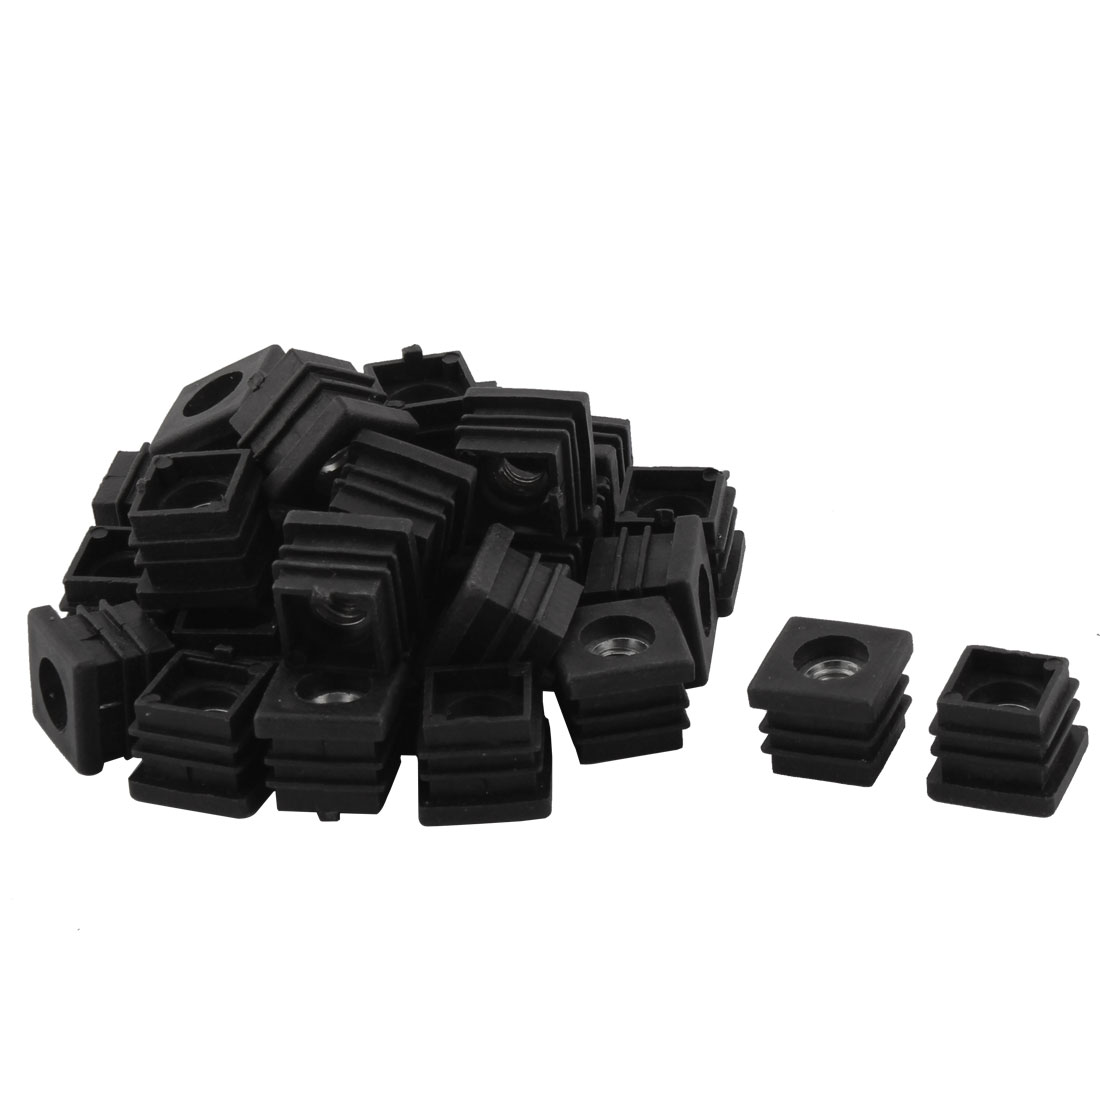 Household Plastic Square Shaped Chair Leg Tube Pipe Insert Black 2 x 2cm 30 PCS